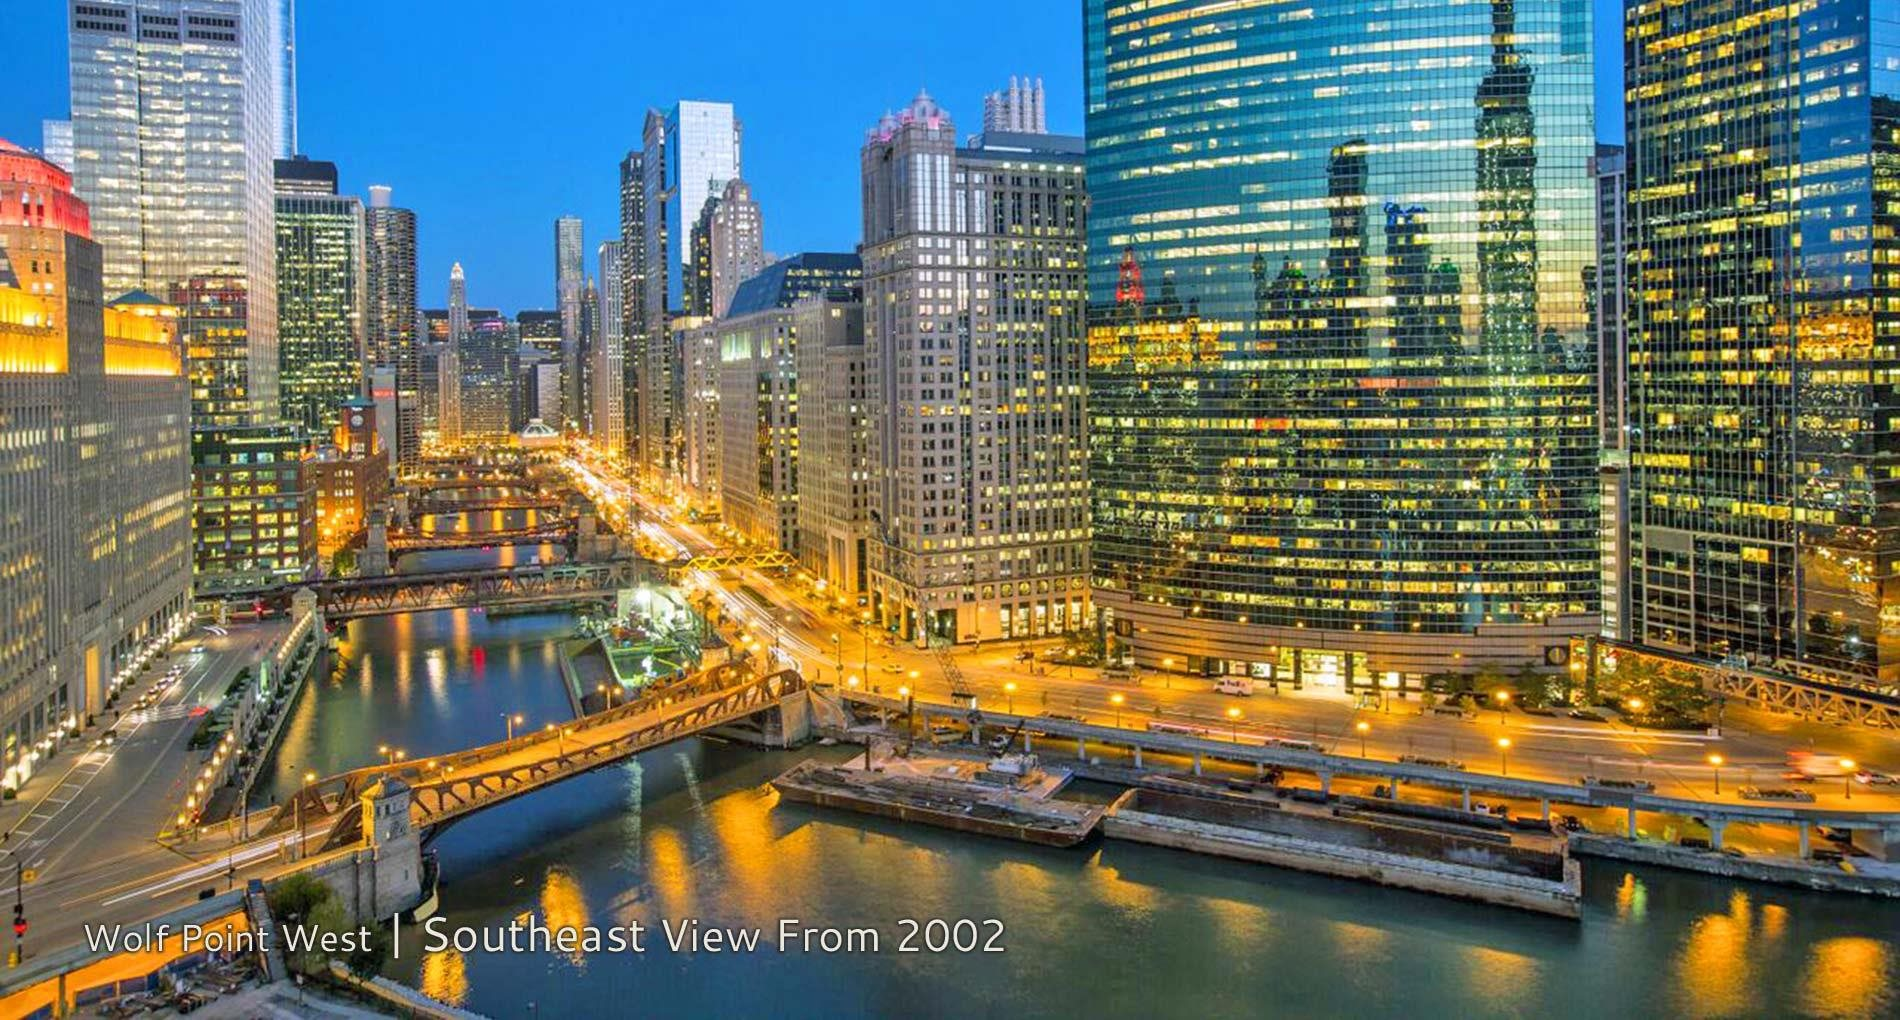 Wolf Point West | Southeast View From 2002